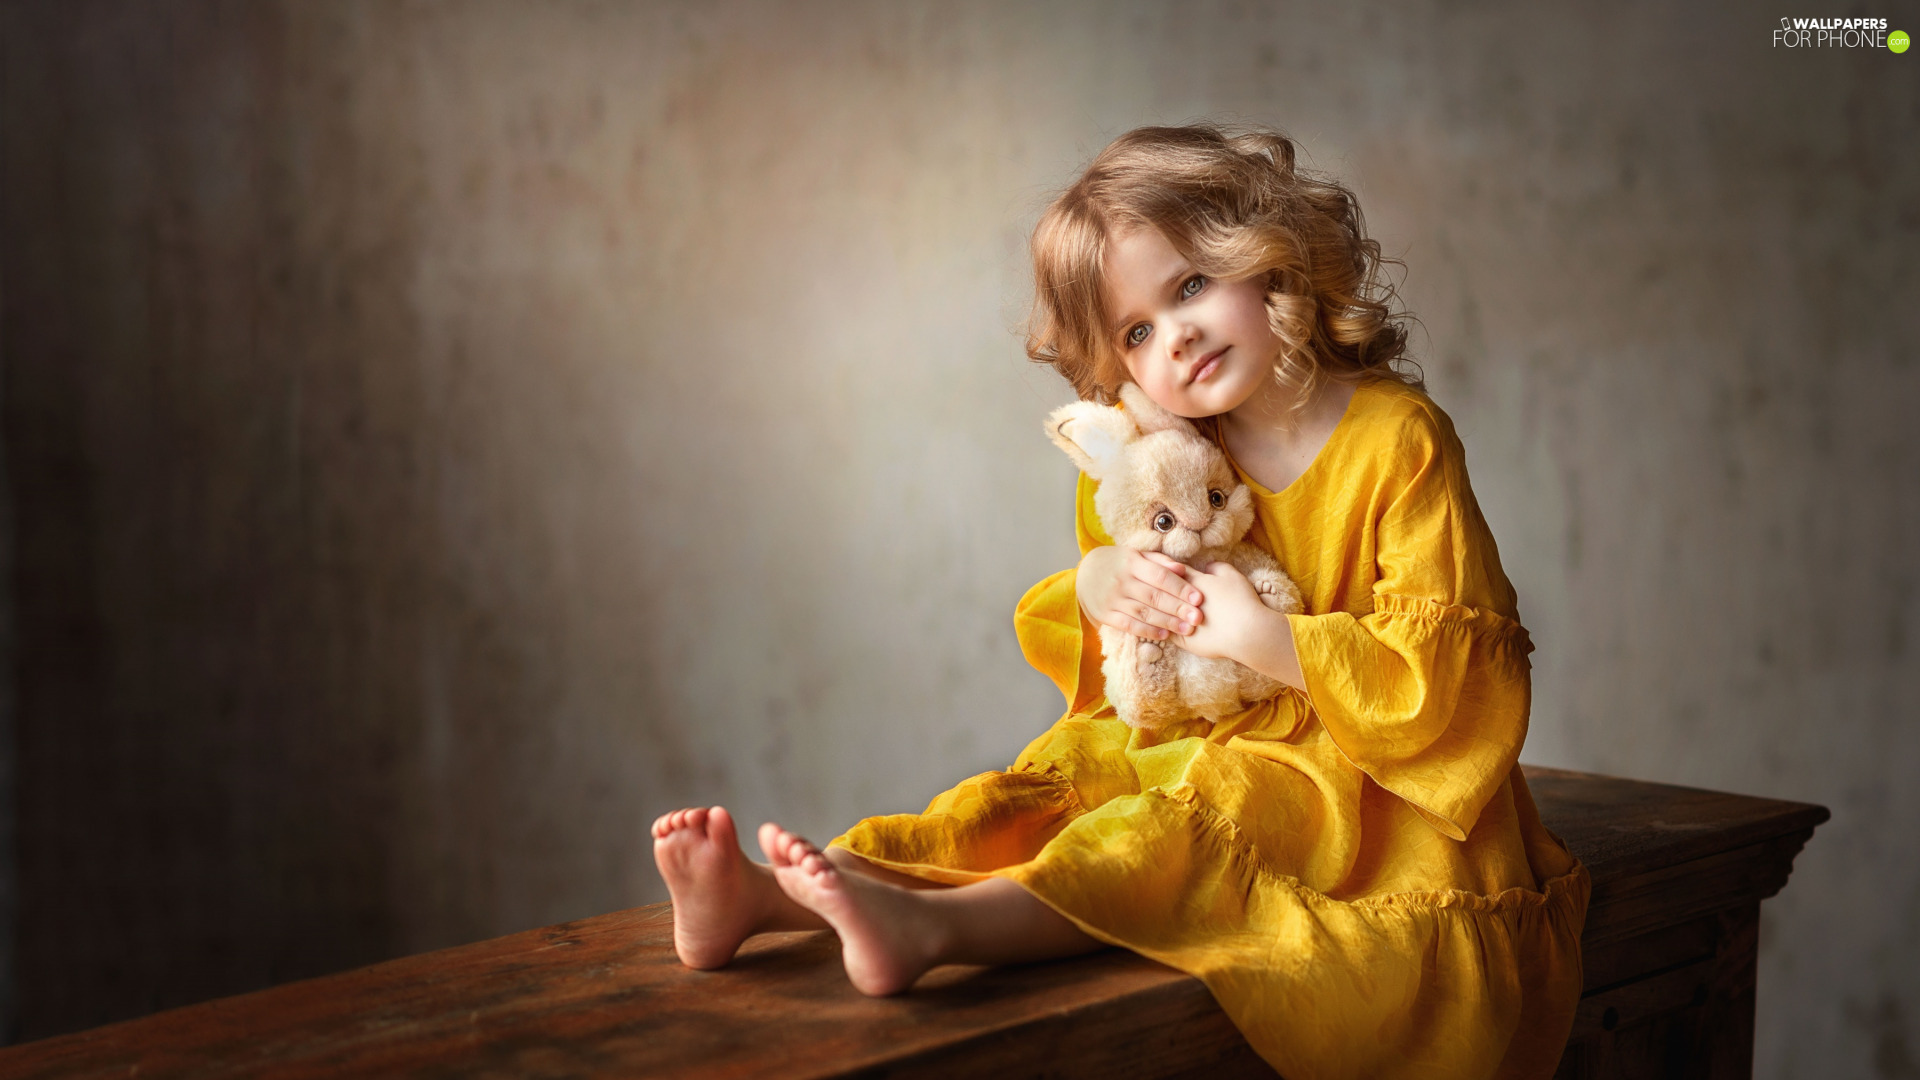 Plush, Bunny, Yellow Honda, dress, girl